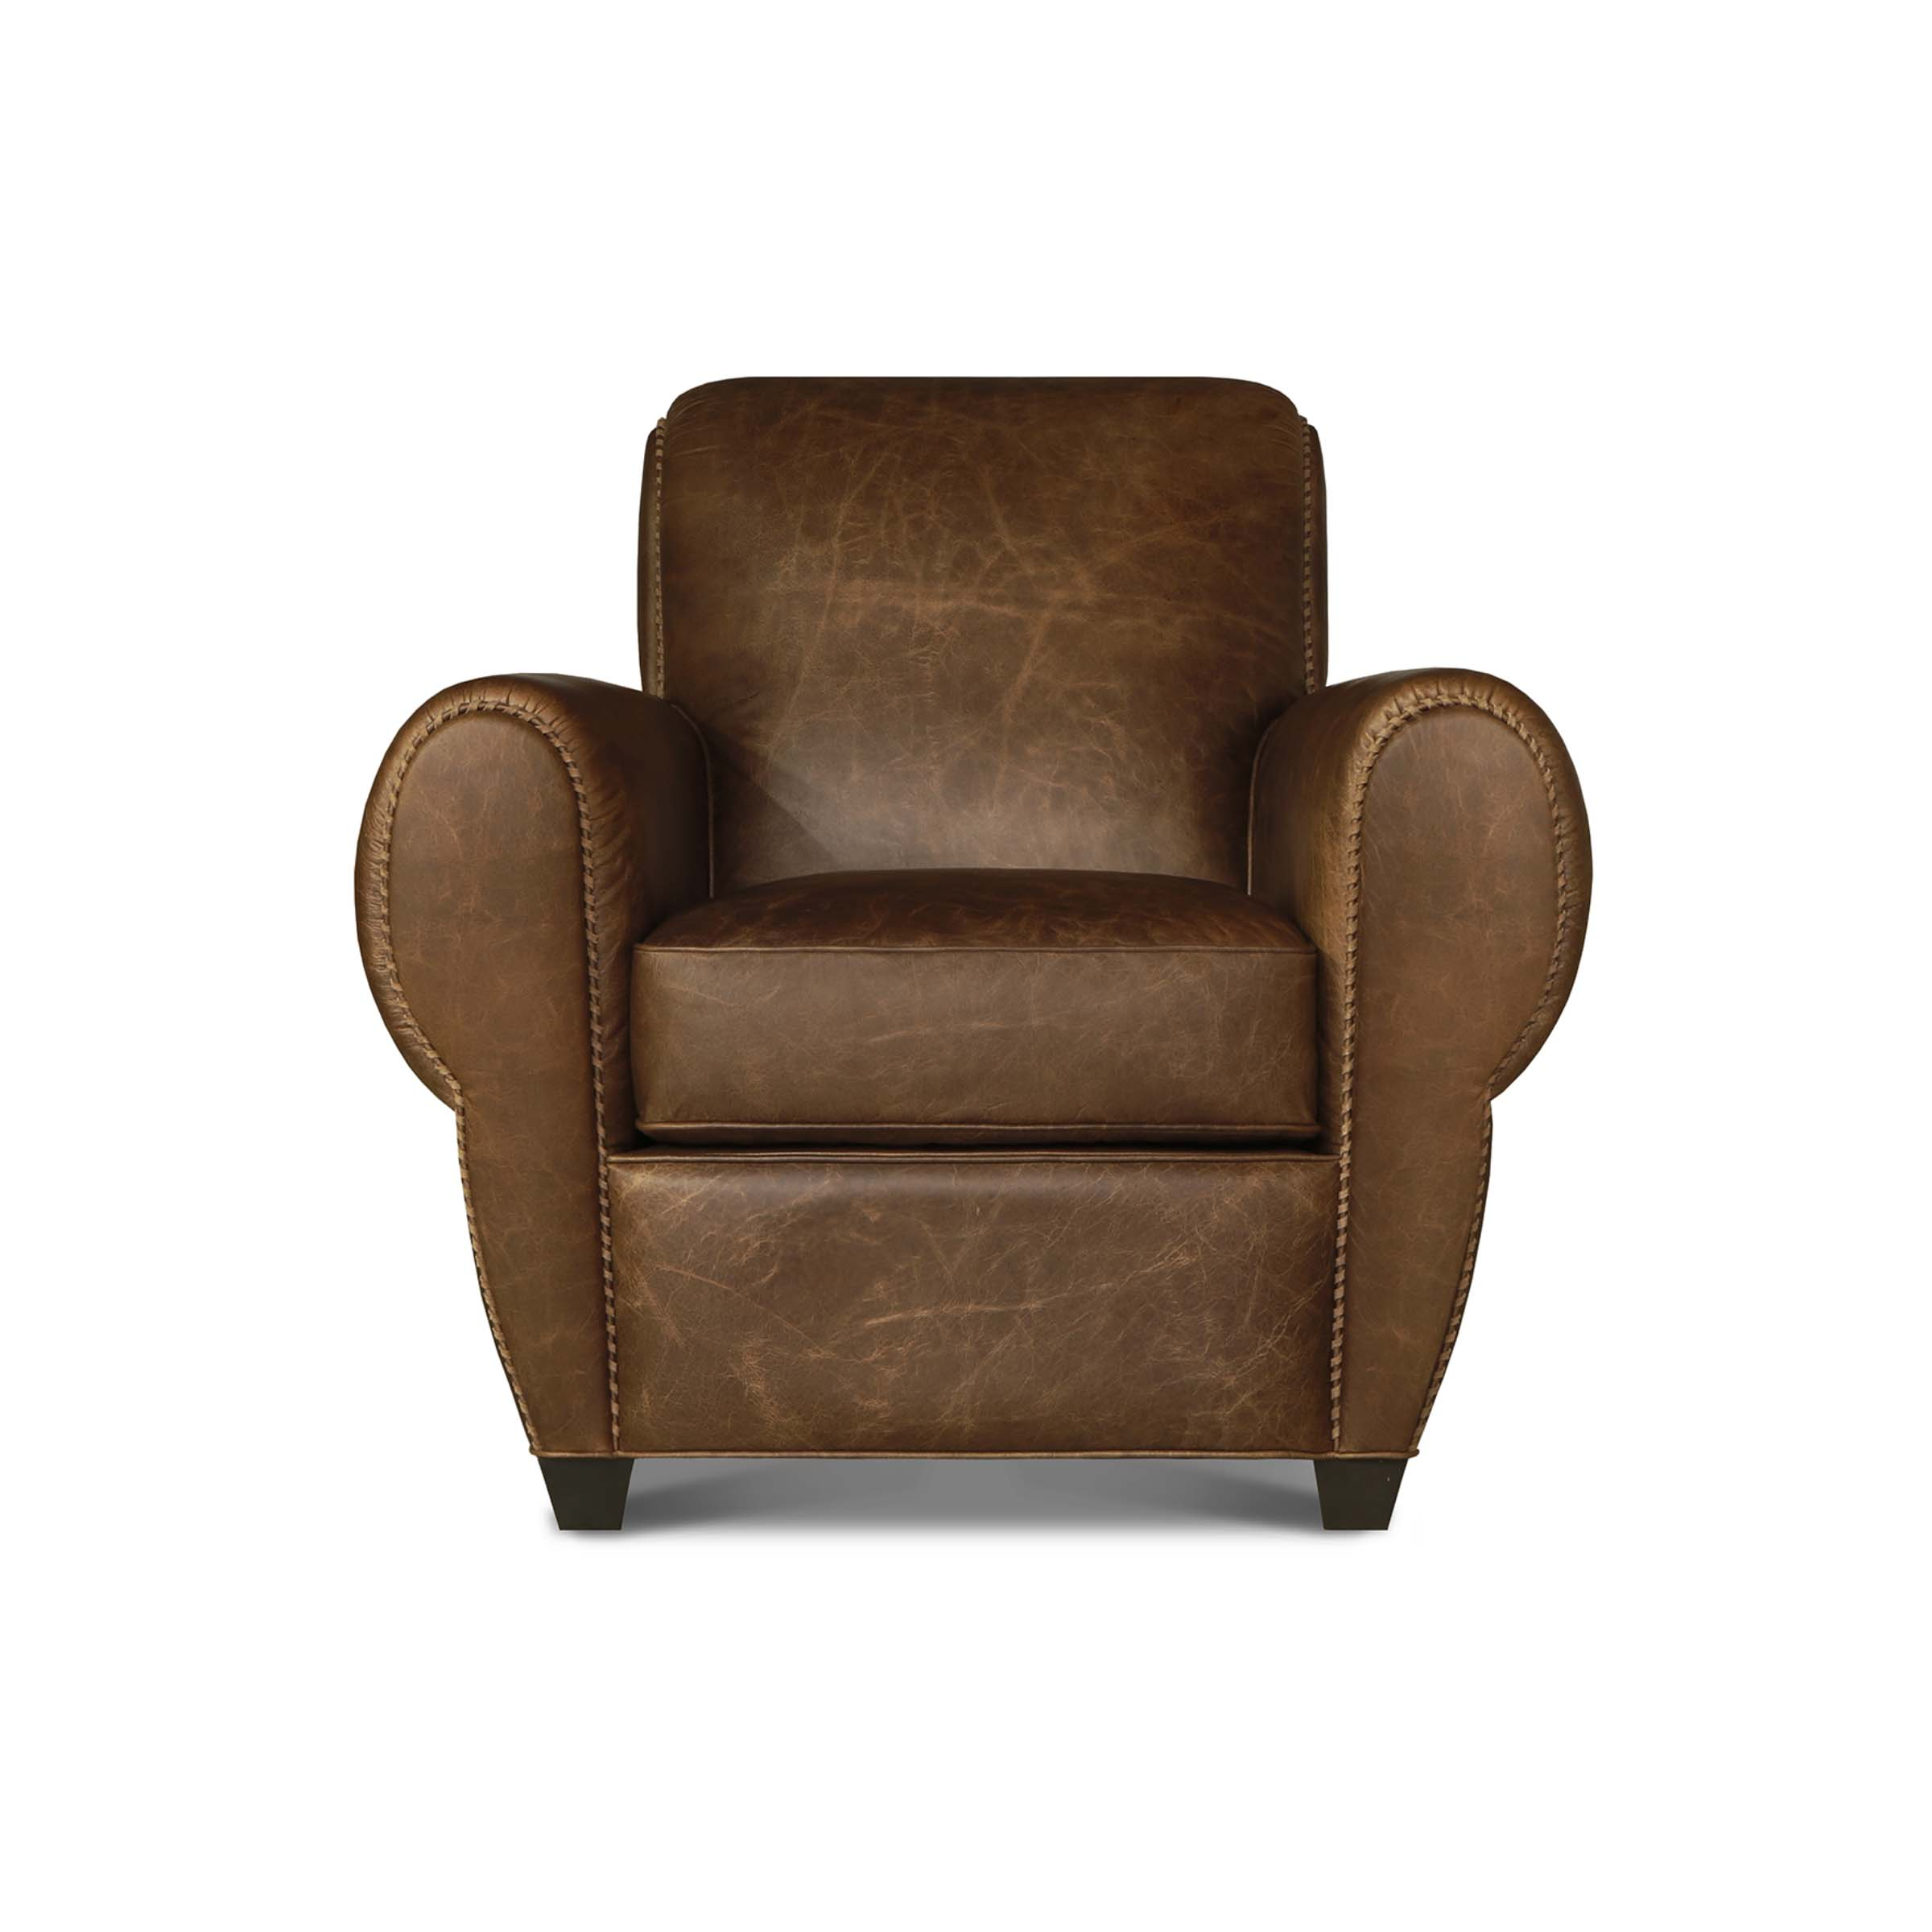 PARISIAN - 1E Accent Chair Sonewood Vintag